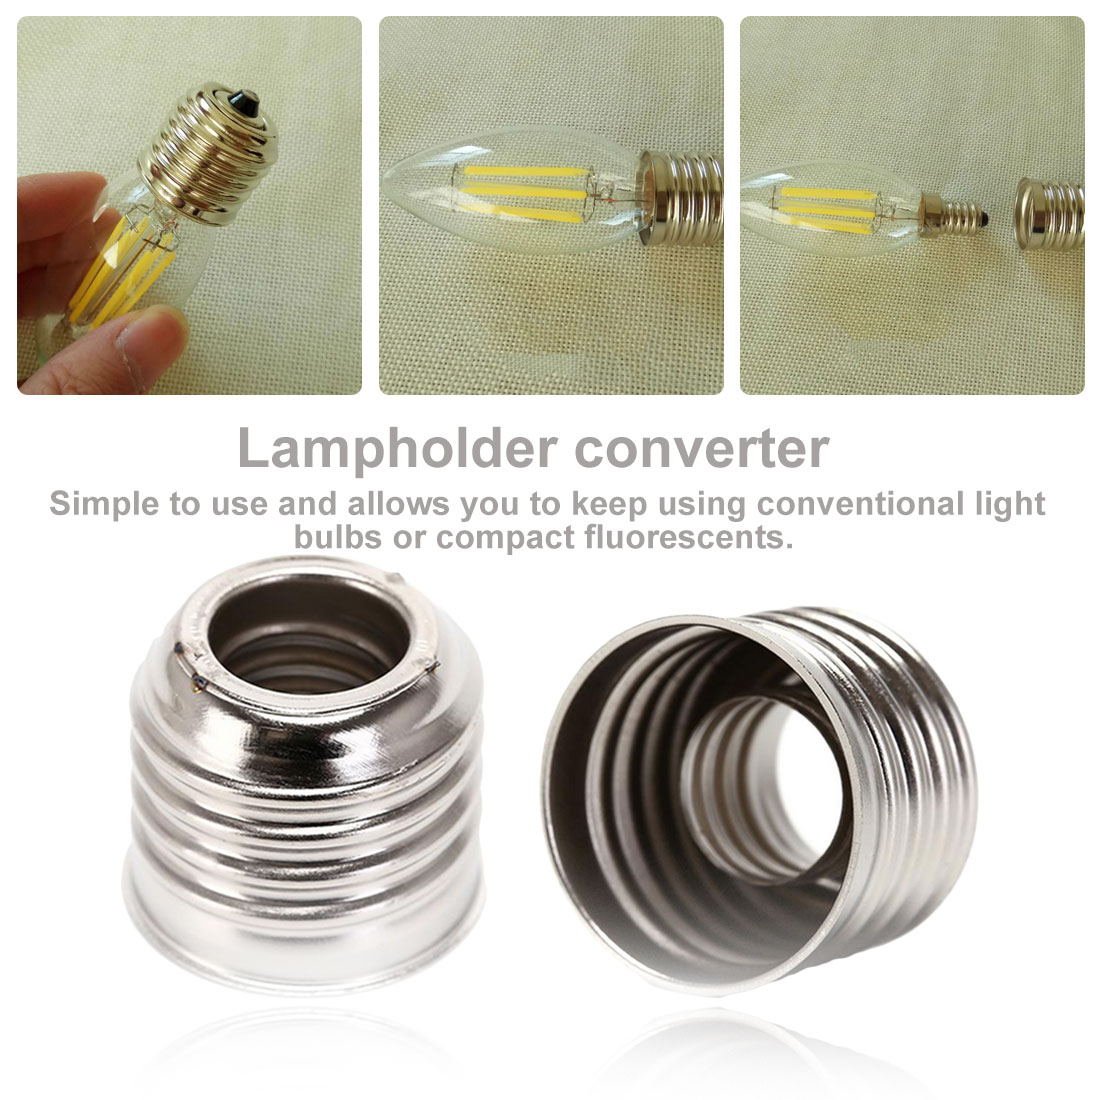 1PC E27 To E14 Lamp Holder Converter Socket Light Bulb Lamp Holder Adapter Plug Extender Led Light